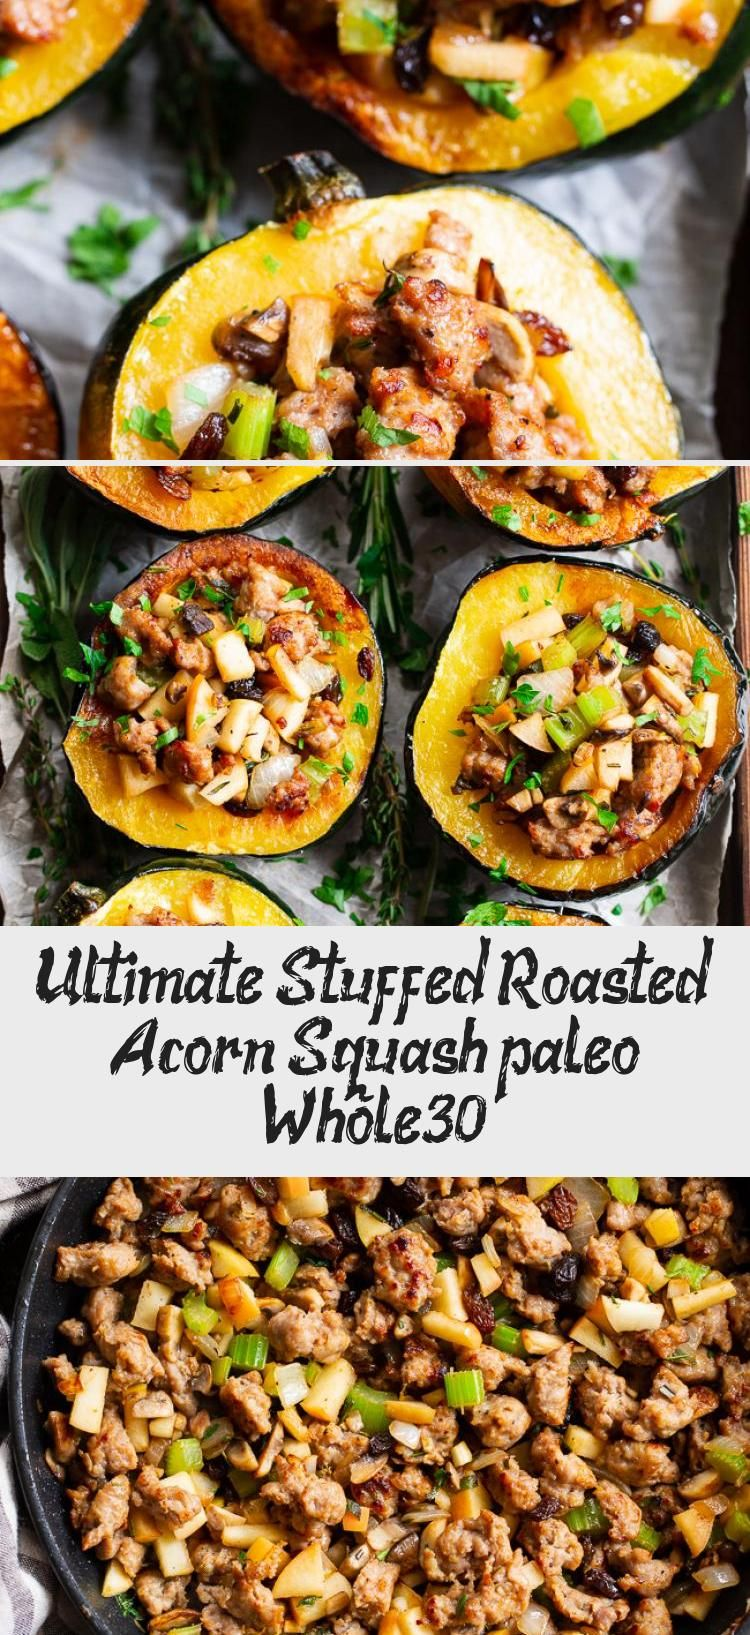 Ultimate Stuffed Roasted Acorn Squash Paleo Whole30 Acorn